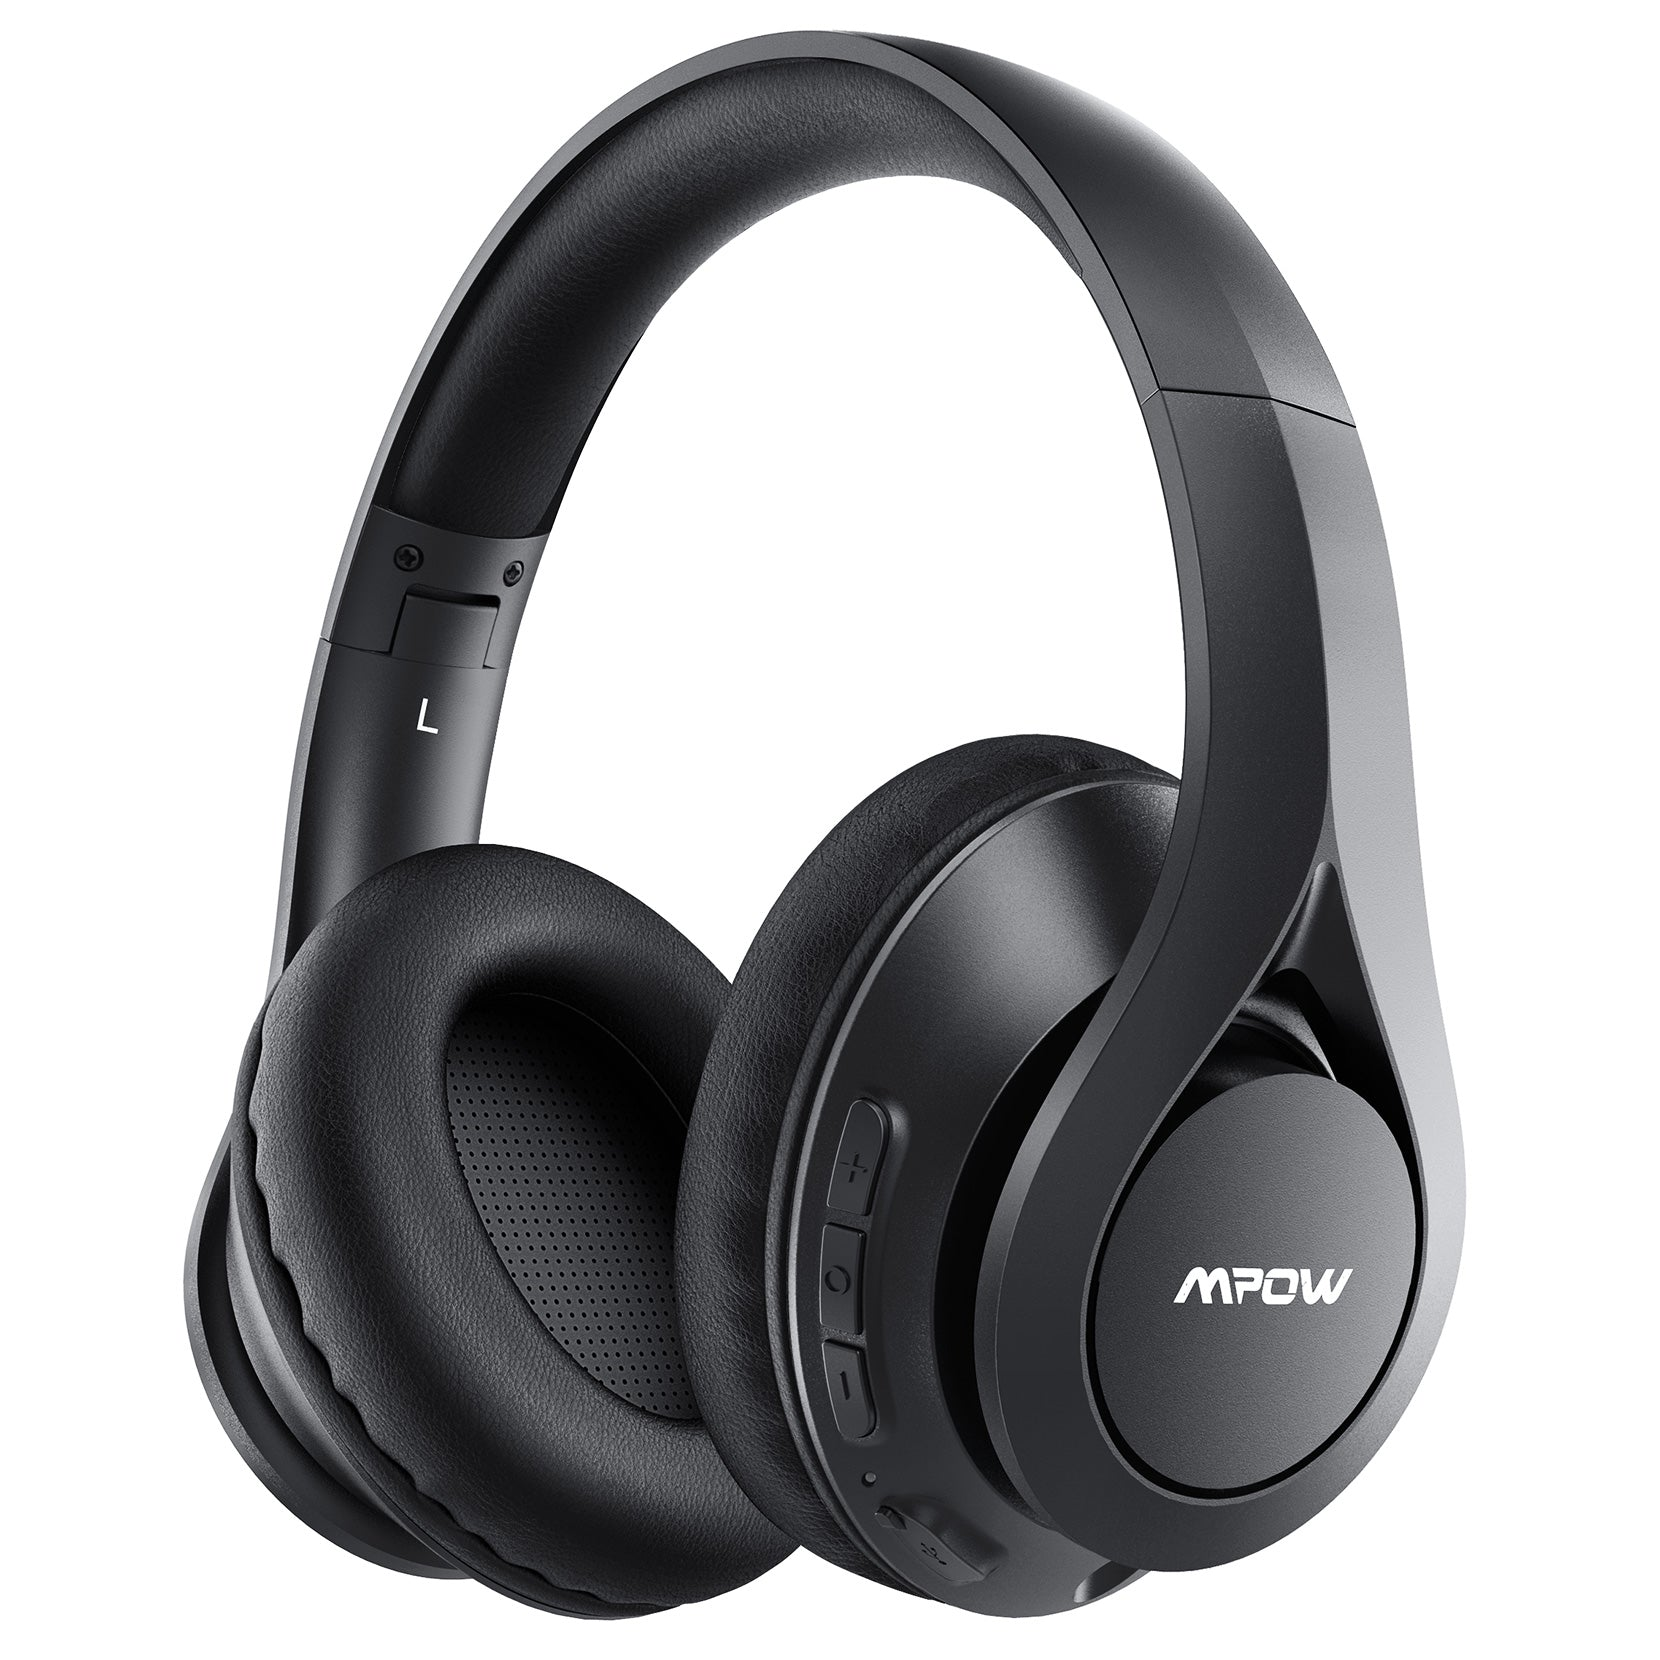 Mpow 60Hrs Wireless Headphones Over Ear